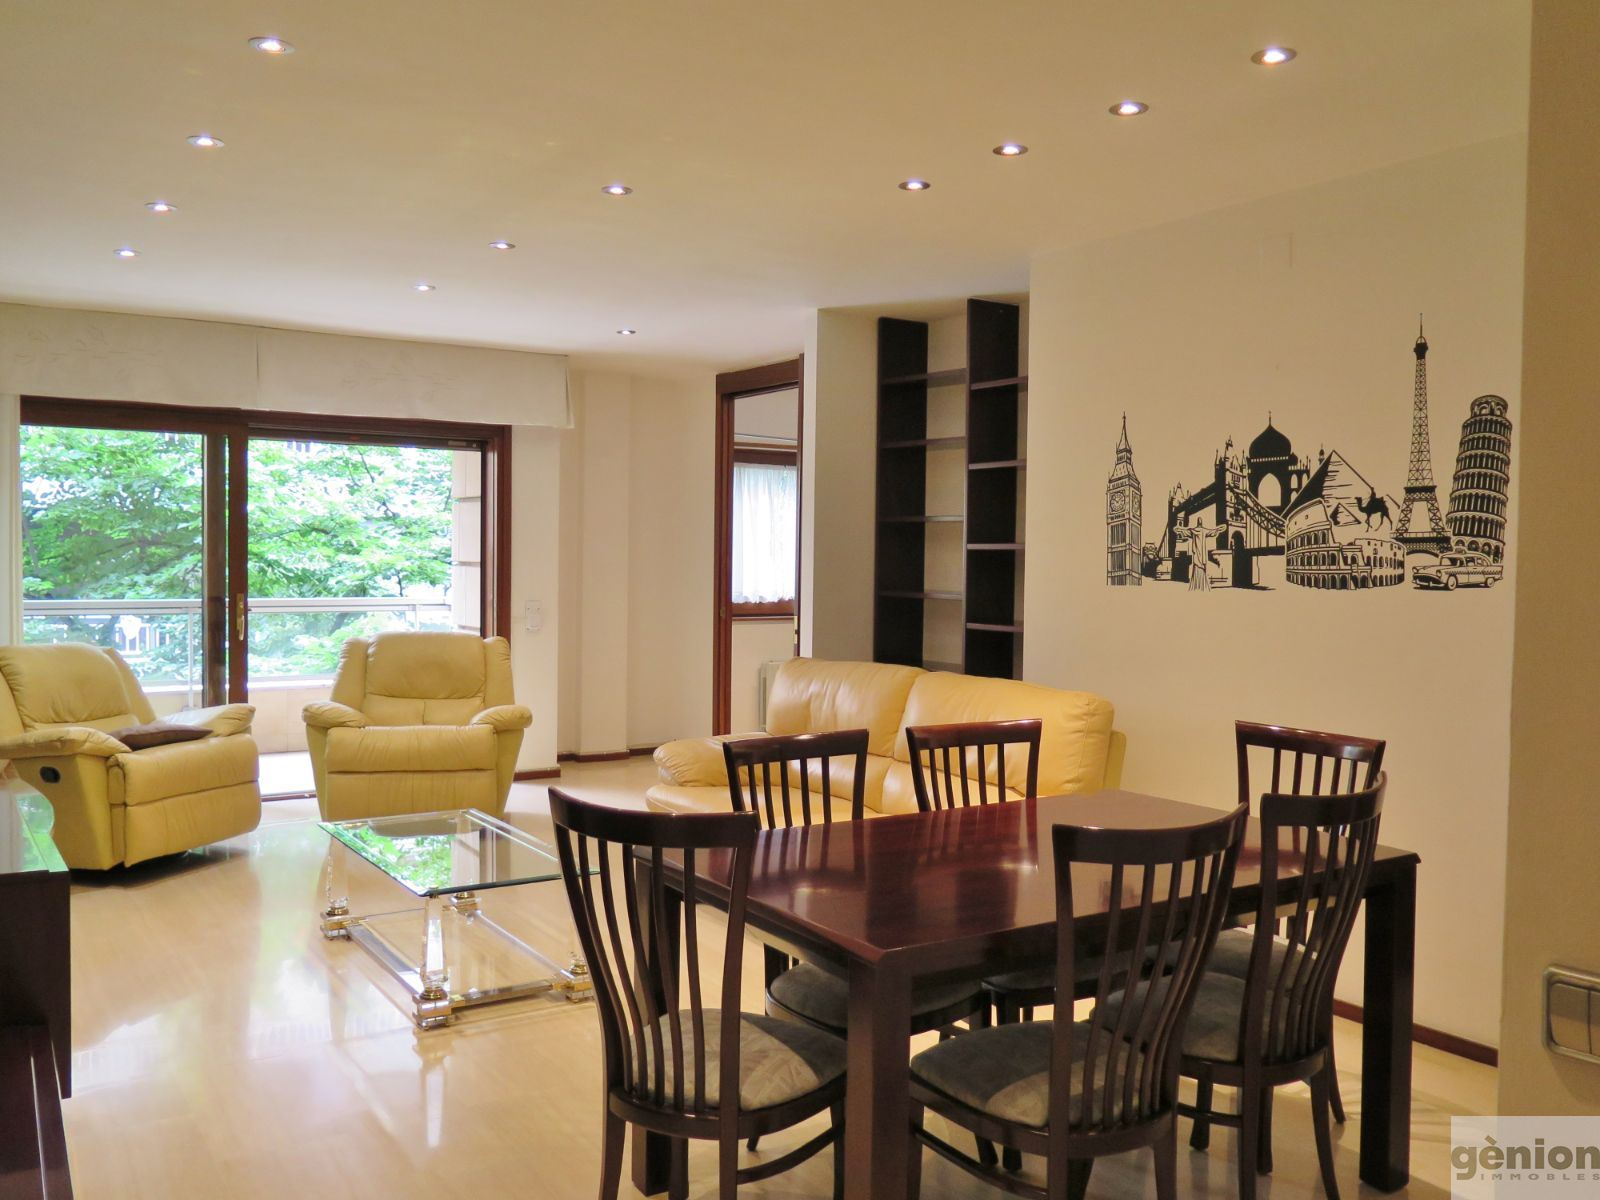 FOUR DOUBLE ROOMS FLAT, IN THE HEART OF GIRONA